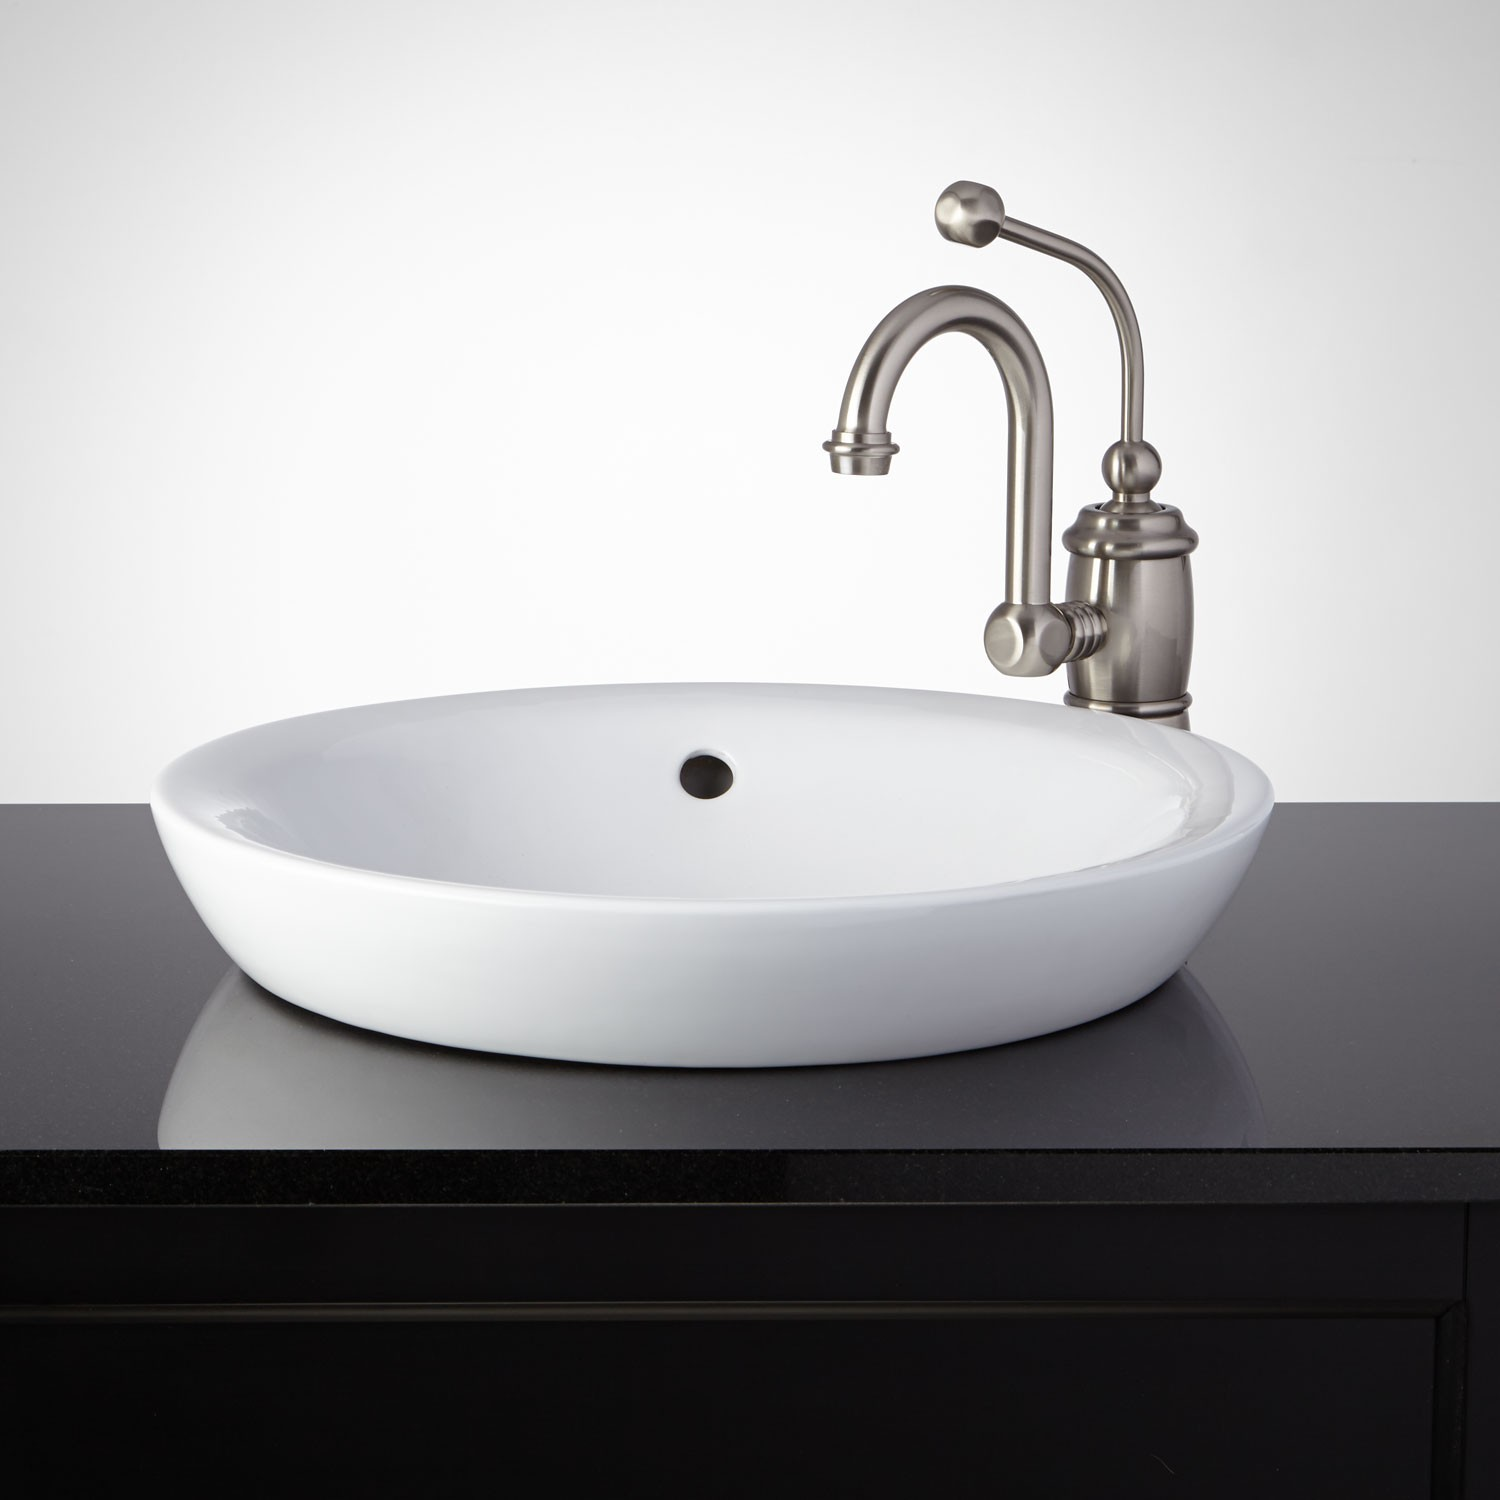 bathroom sink ... this semi-recessed porcelain sink gives your bathroom a stylish, modern  look. PCPJQGI